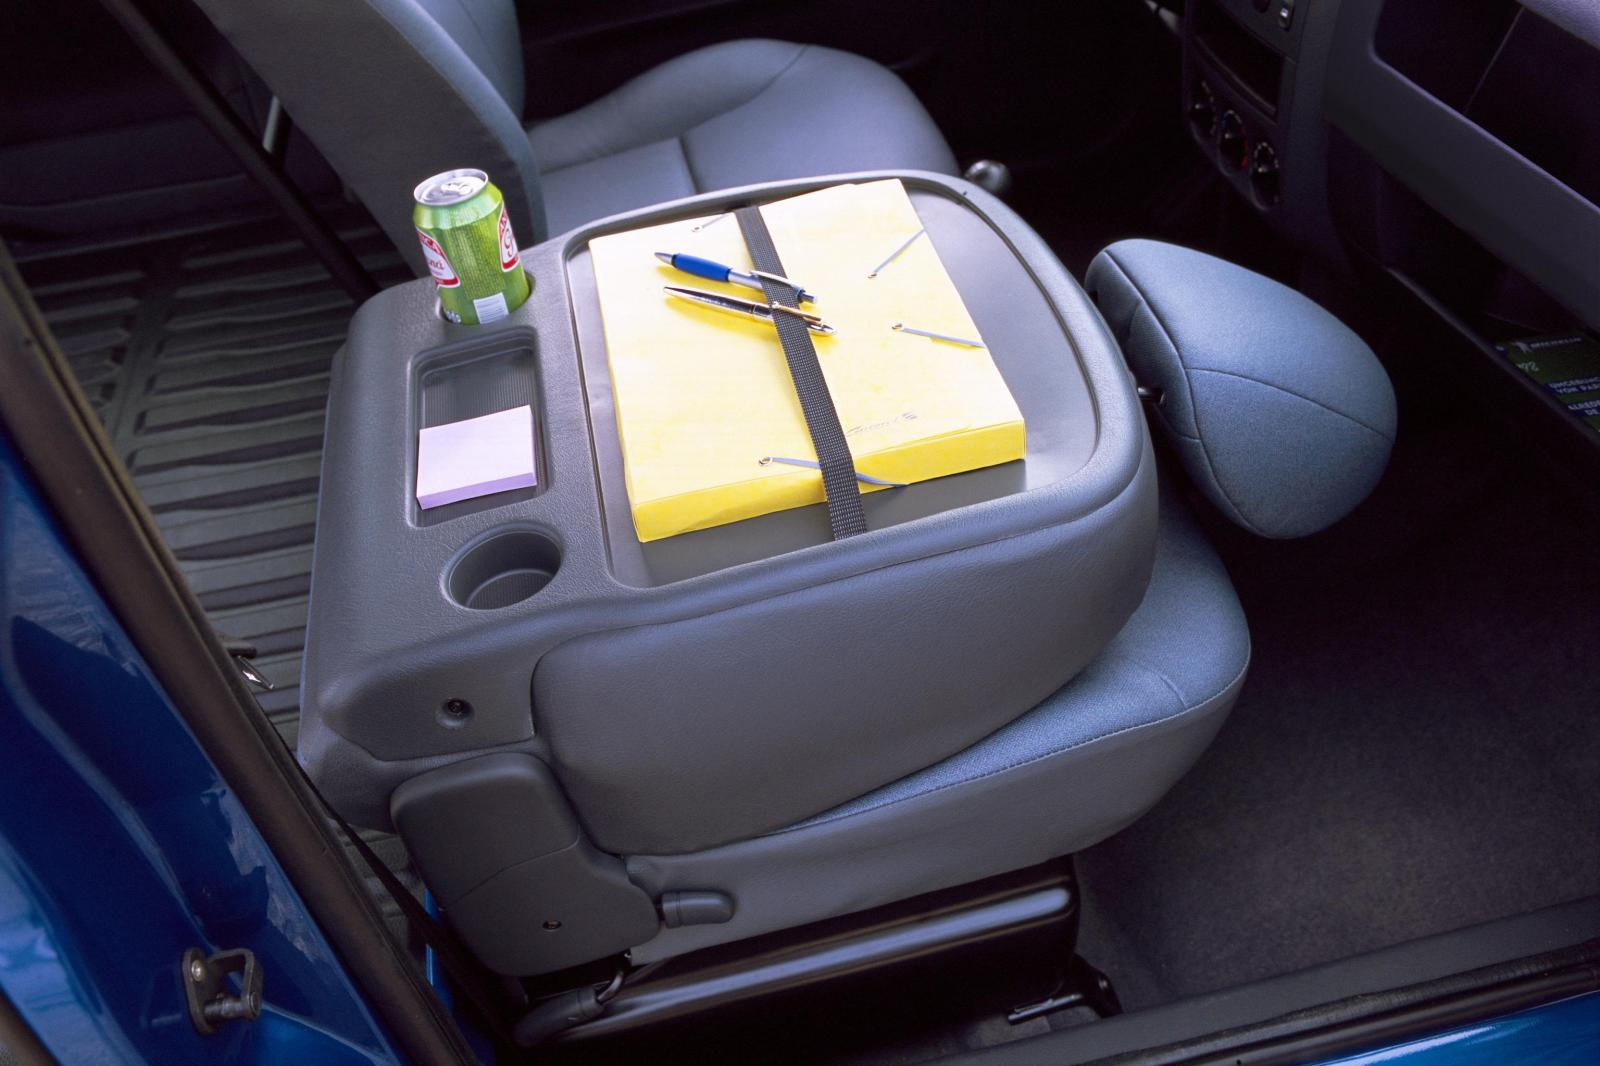 Berlingo 2002 seat folded down